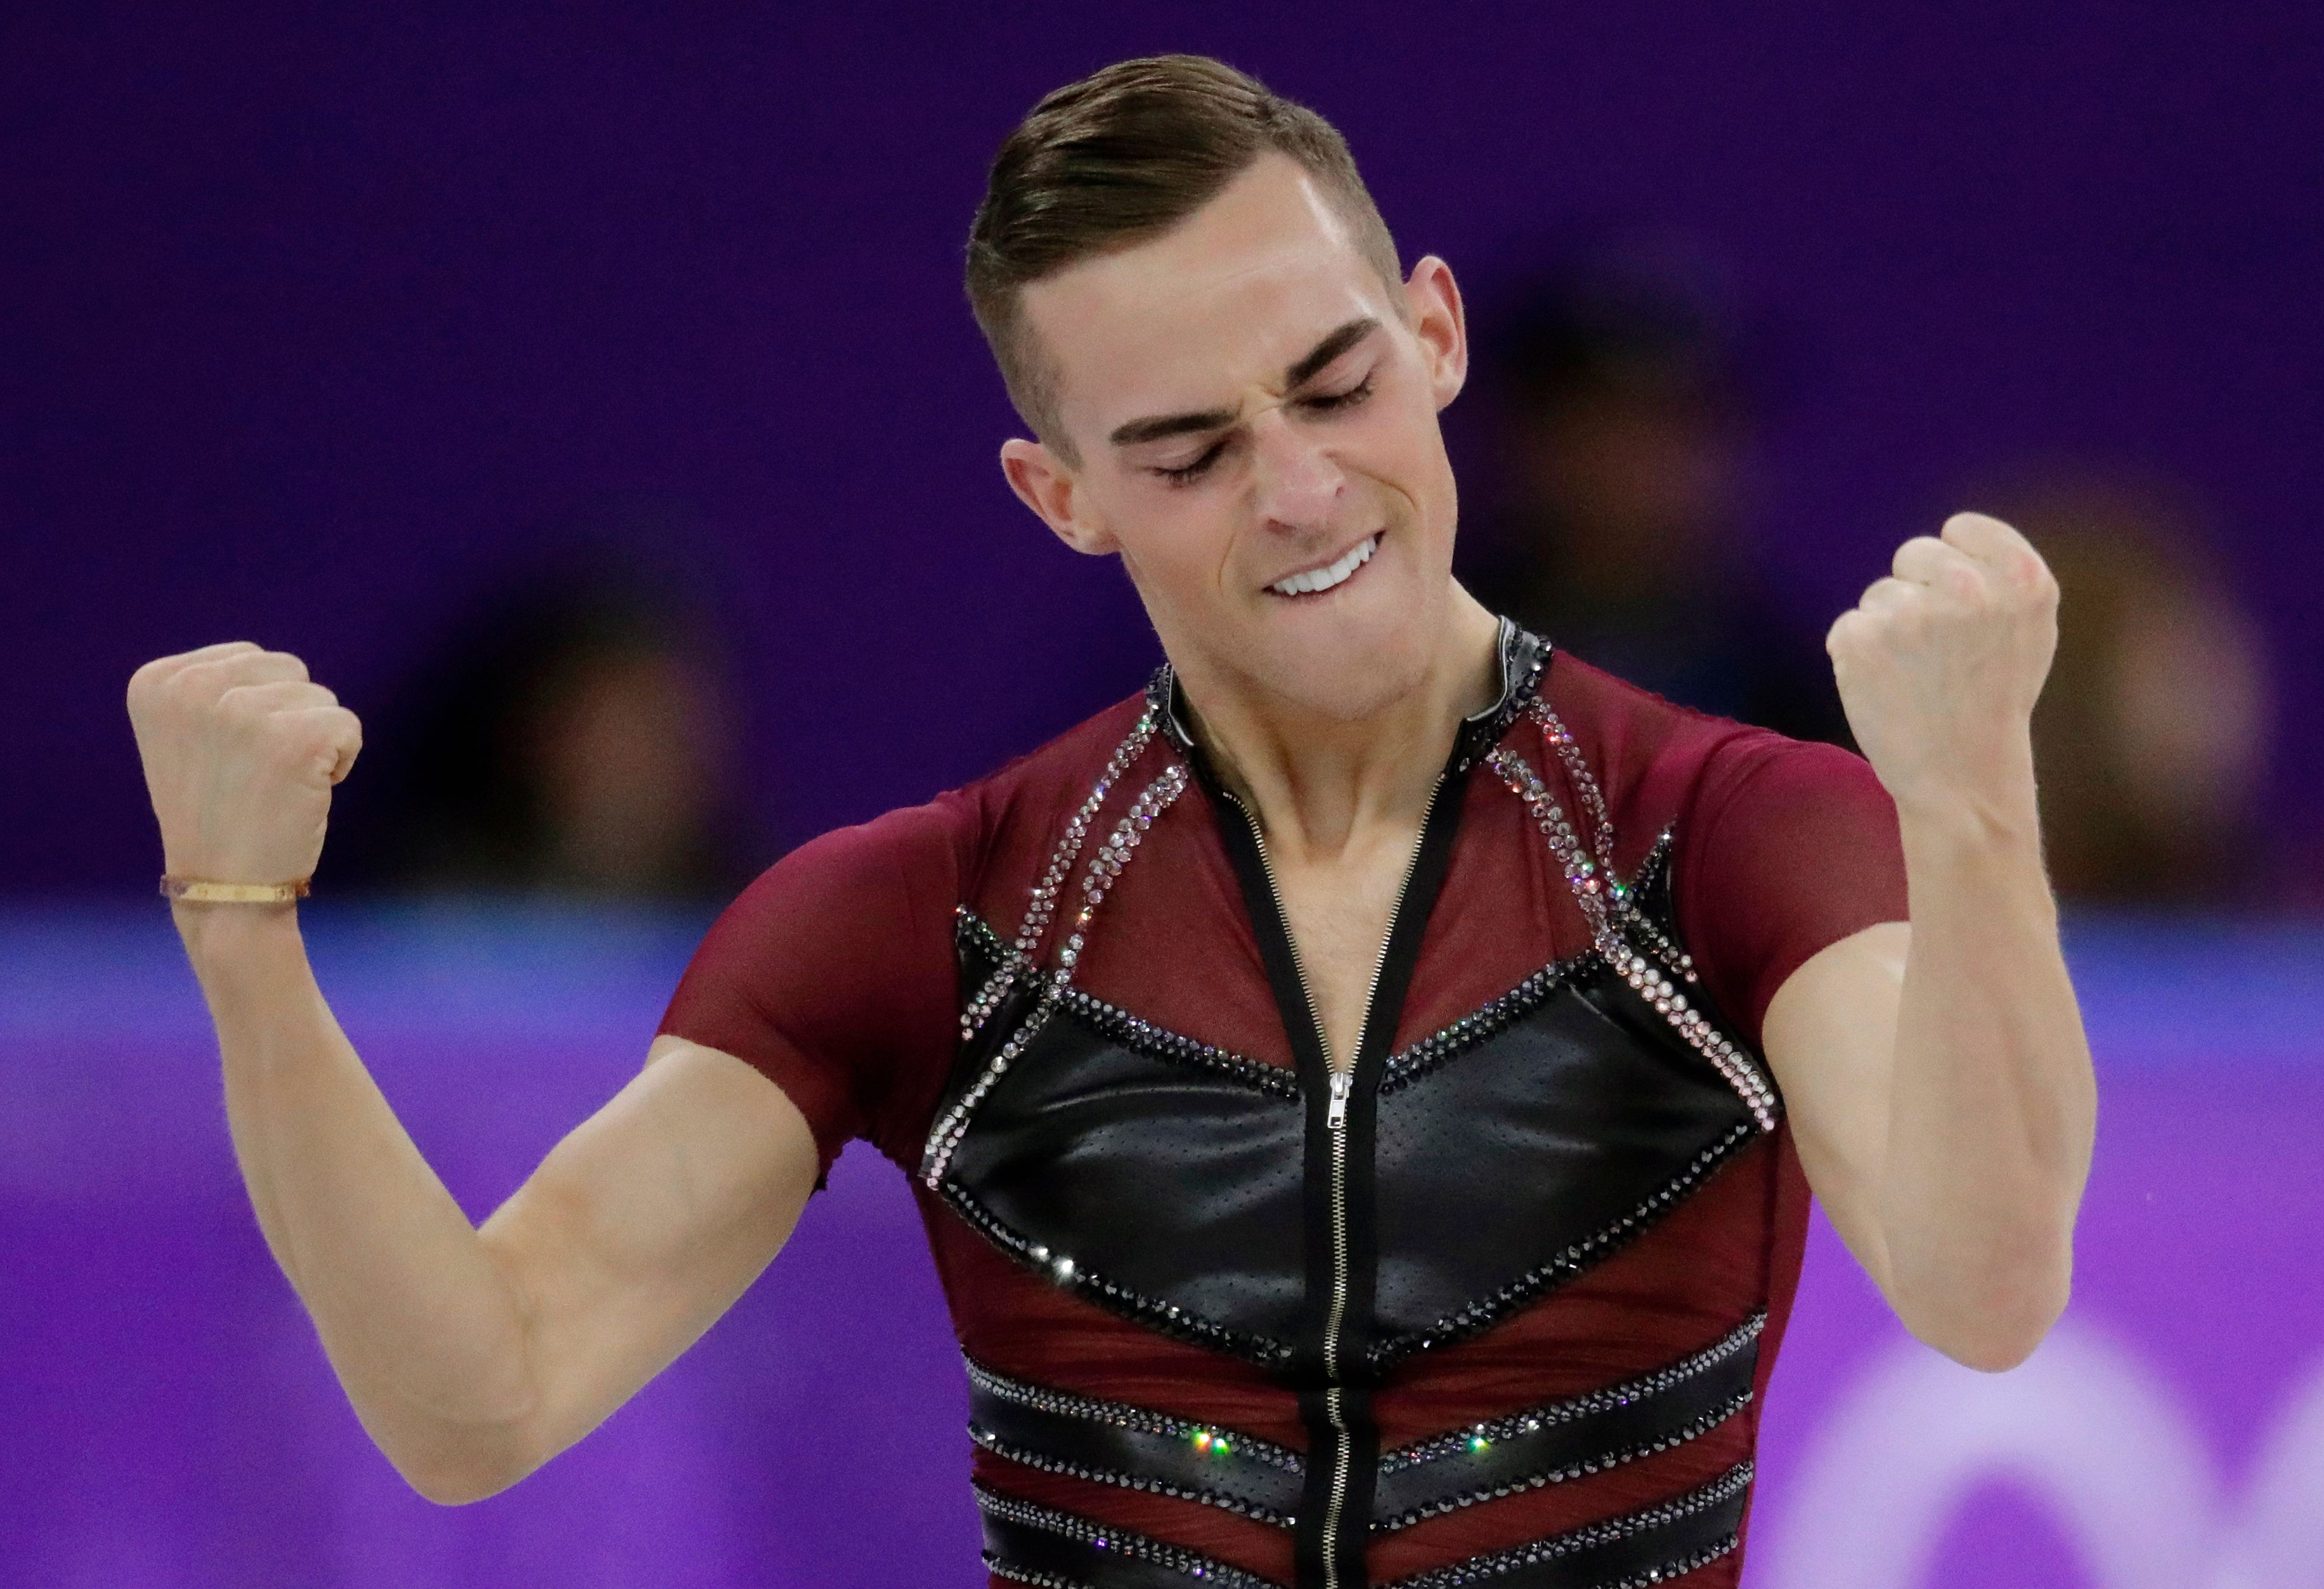 FILE - In this Feb. 16, 2018, file photo, Adam Rippon of the United States reacts after his performance during the men's short program figure skating event at the 2018 Winter Olympics in Gangneung, South Korea. Rippon is among the athletes who will be featured in ESPN the Magazine's 10th anniversary Body Issue. The issue hits newsstands on June 29, 2018. (AP Photo/Julie Jacobson, File)